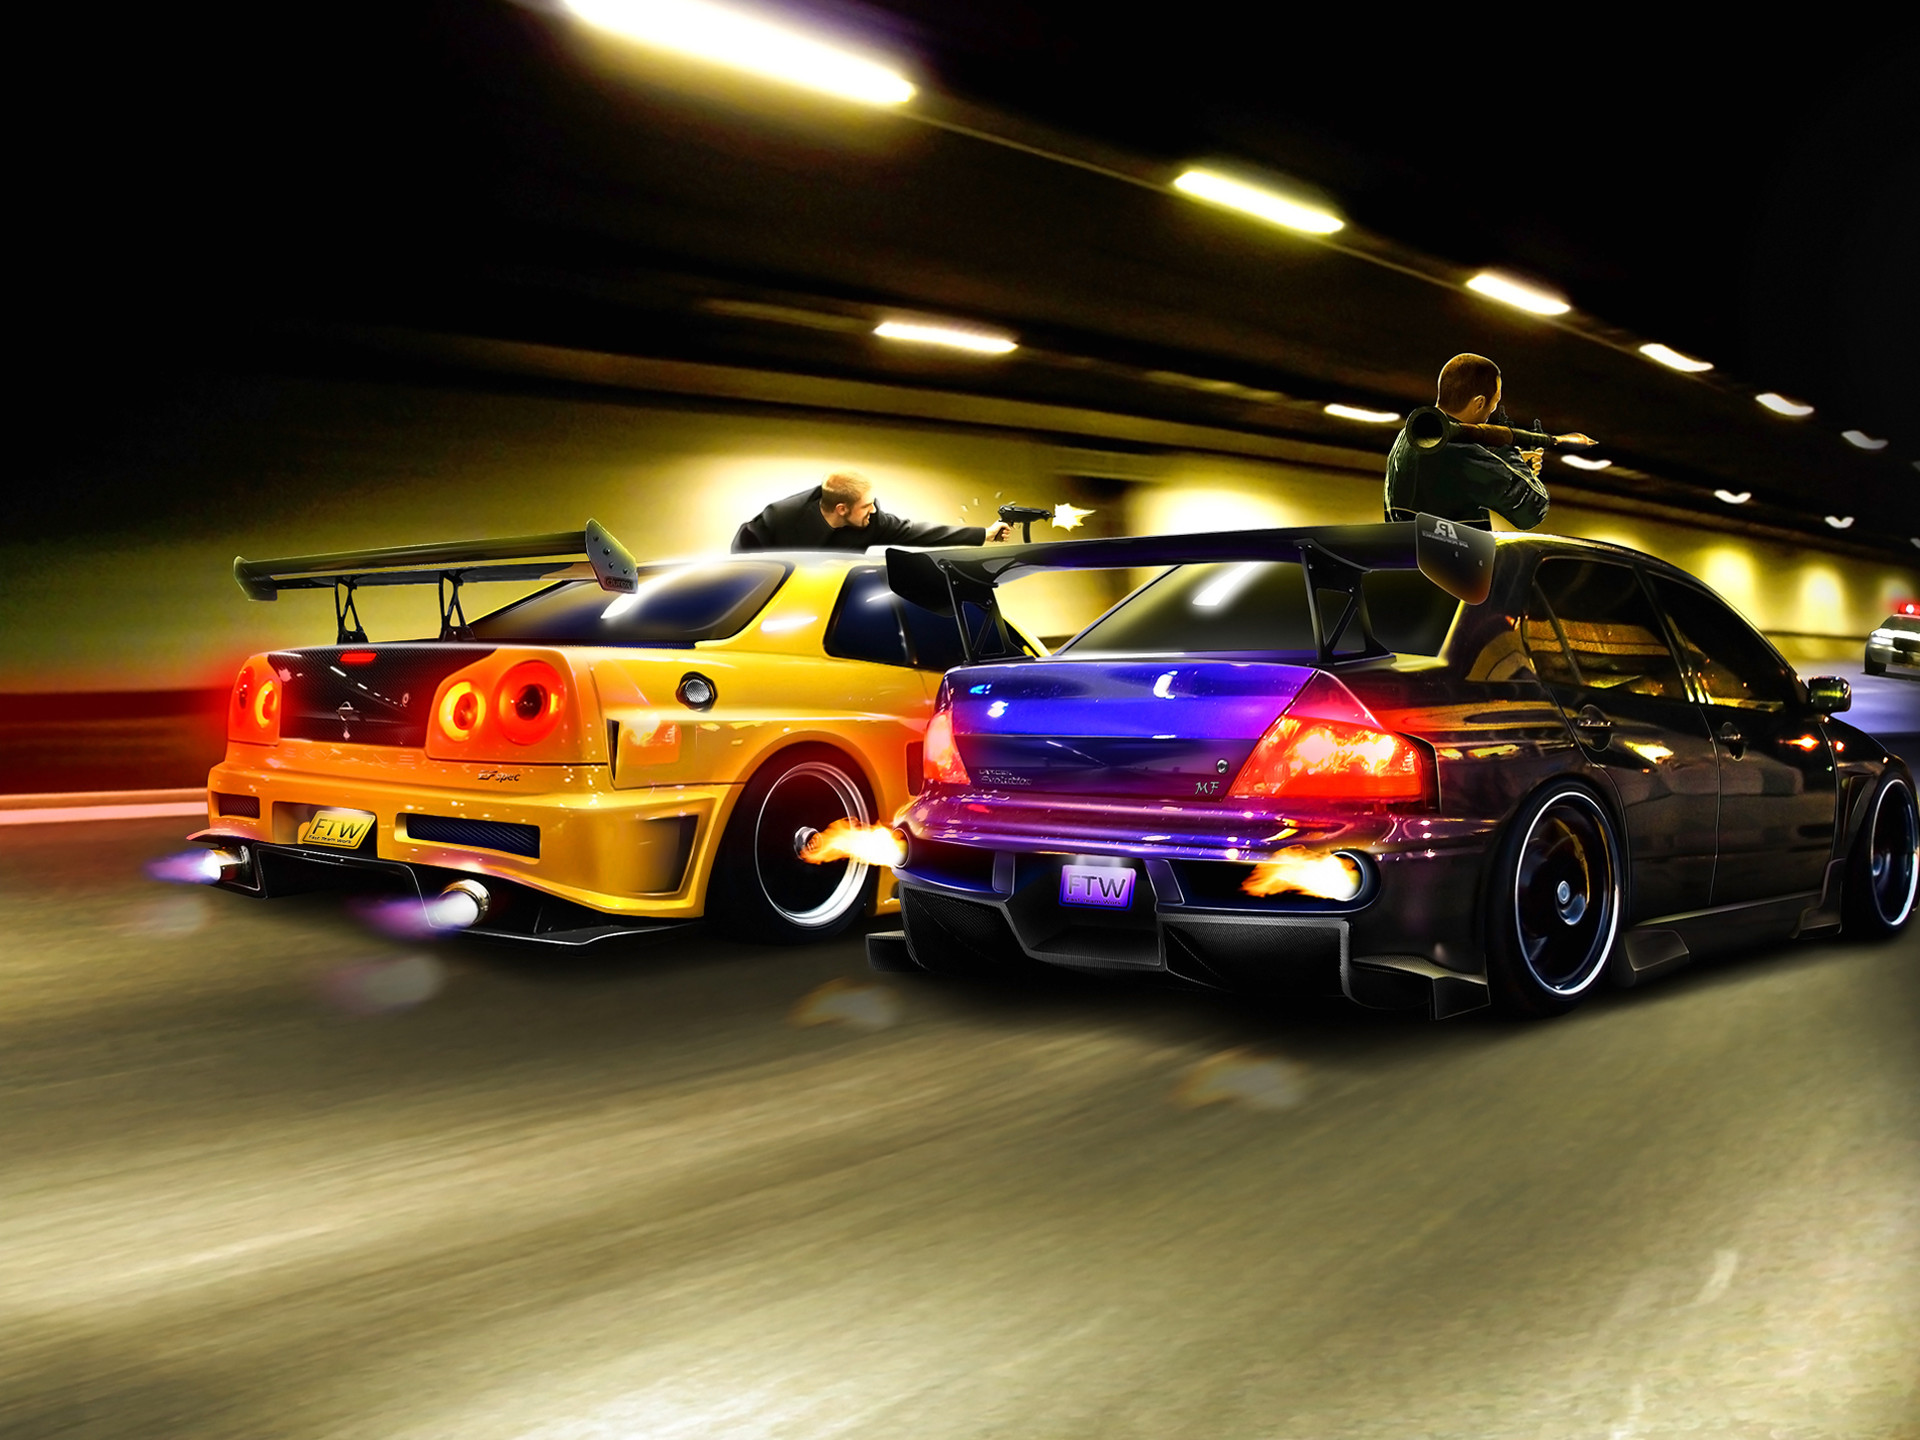 Street Race Cars >> Street Race Cars Wallpapers 59 Images